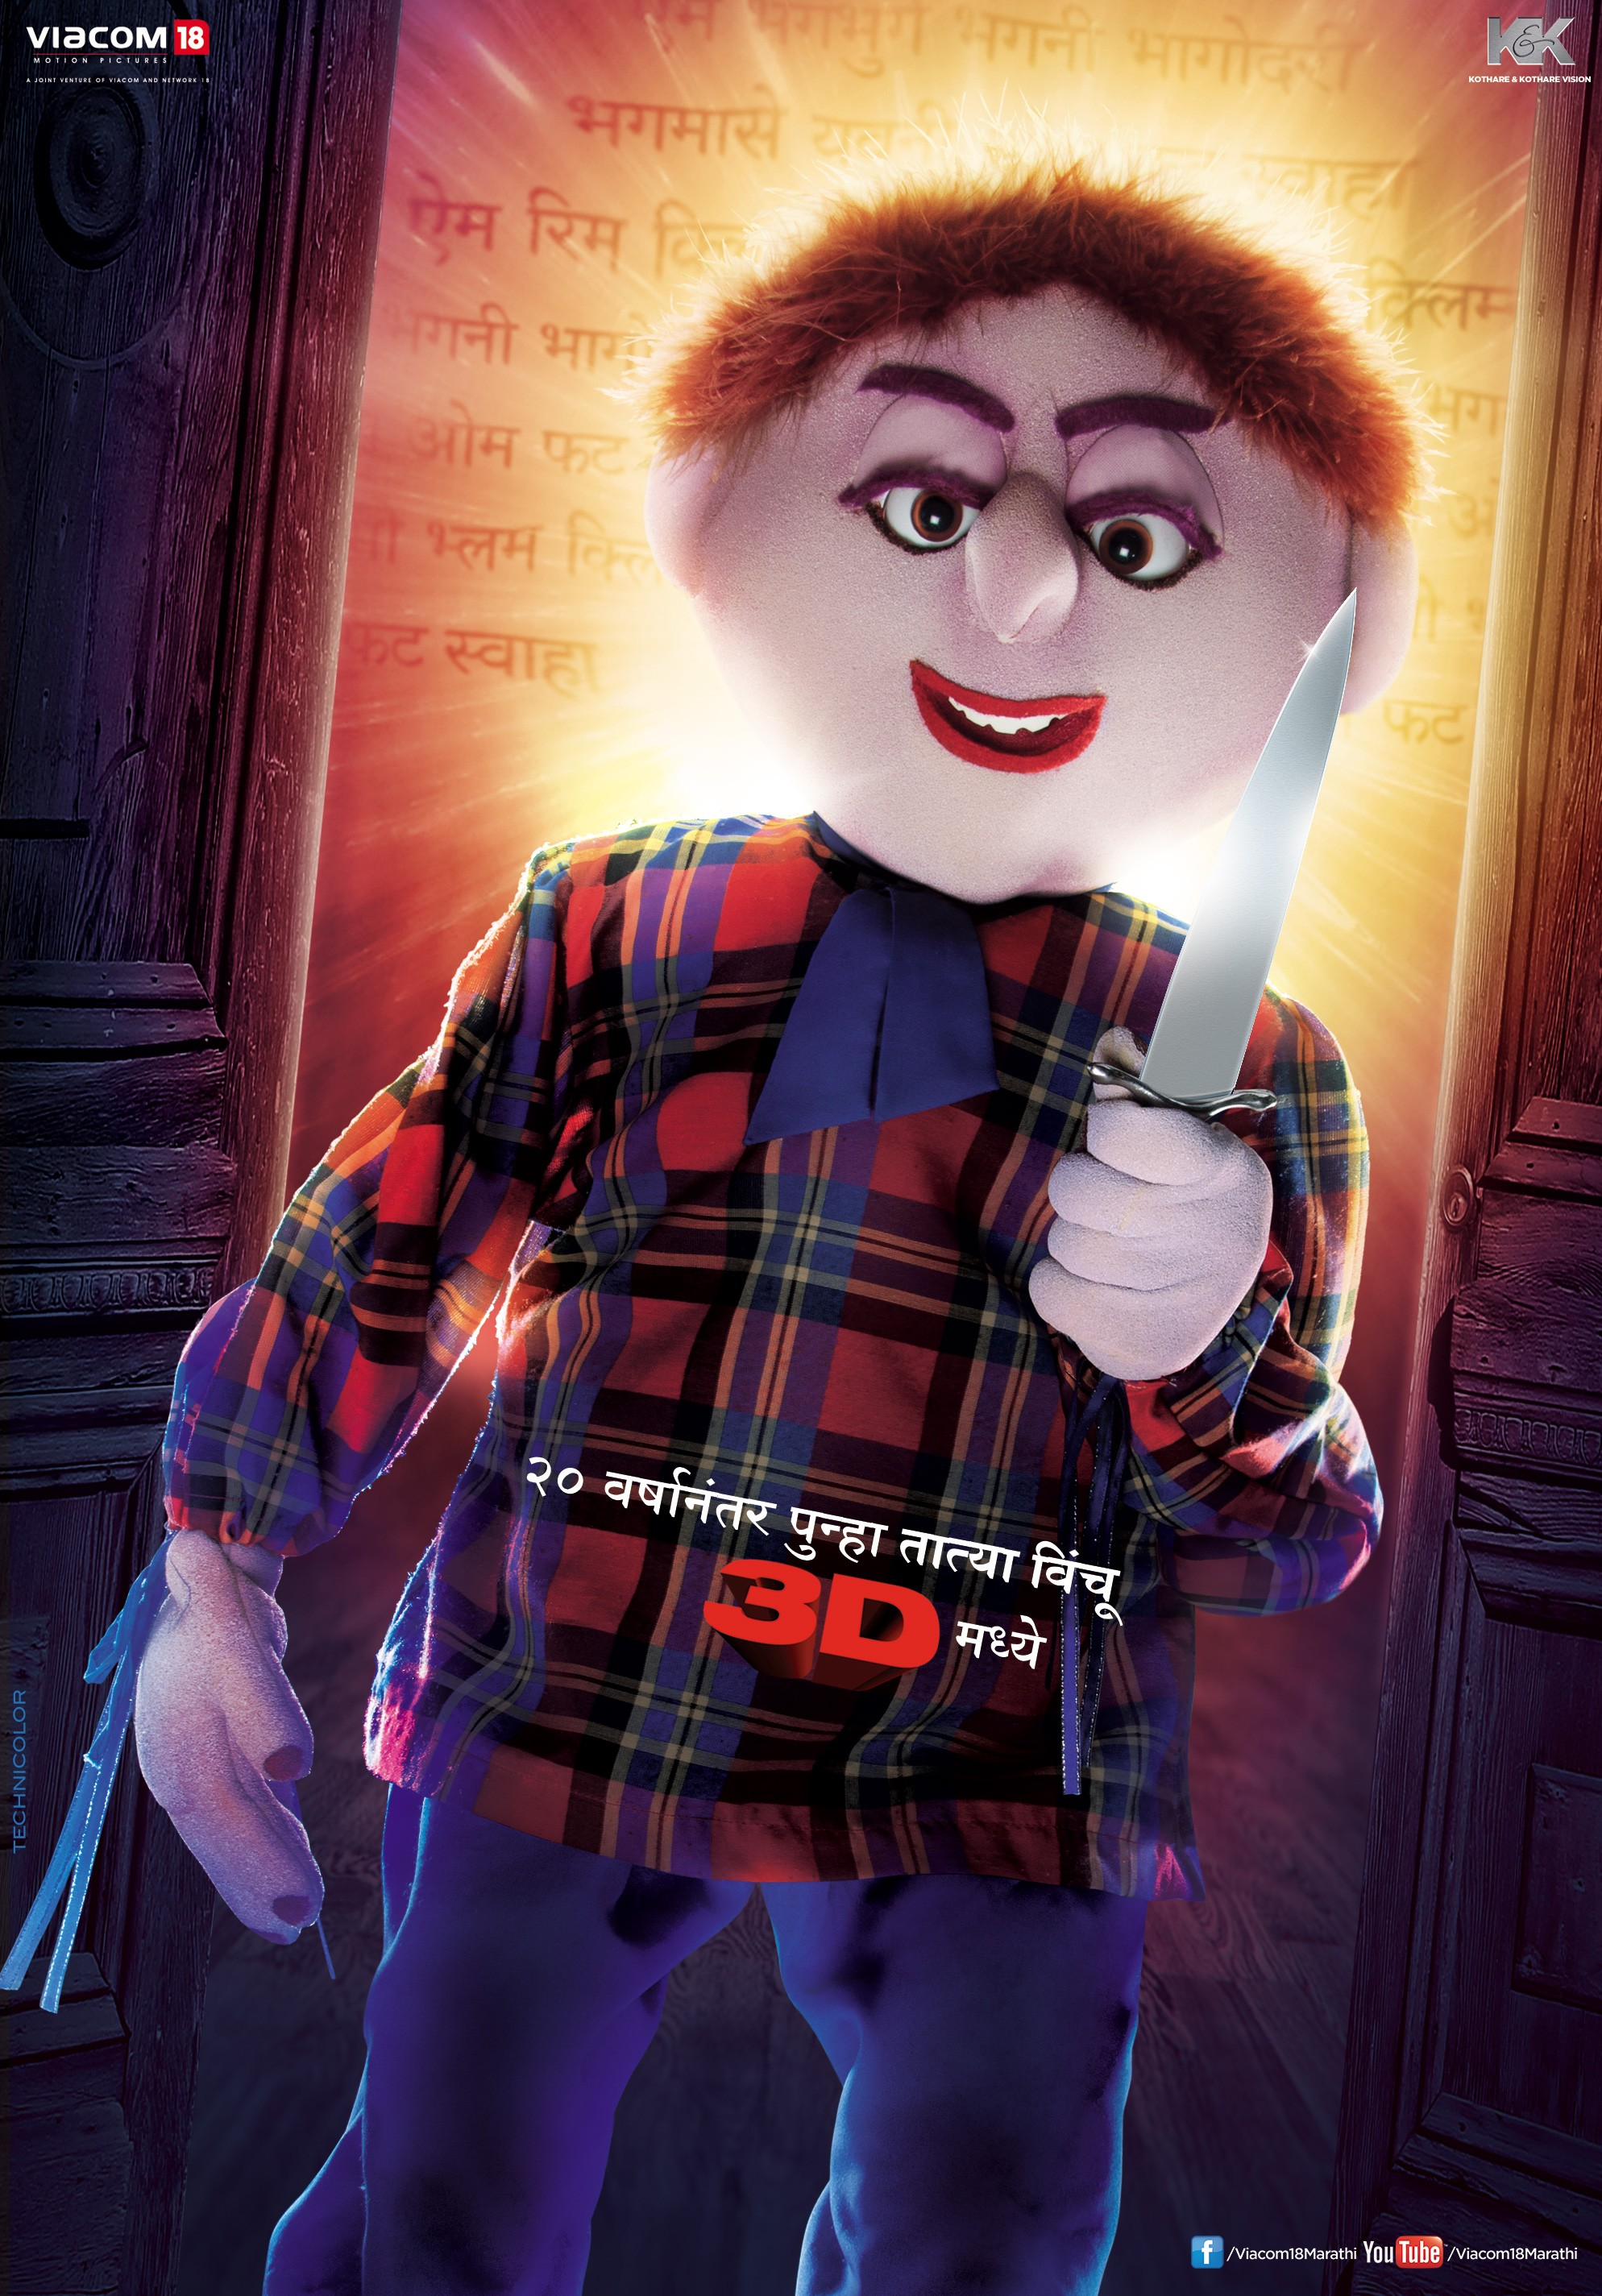 Wallpaper Chucky 3d Flash News 15 Kratke Najave Filmovi S Ruba